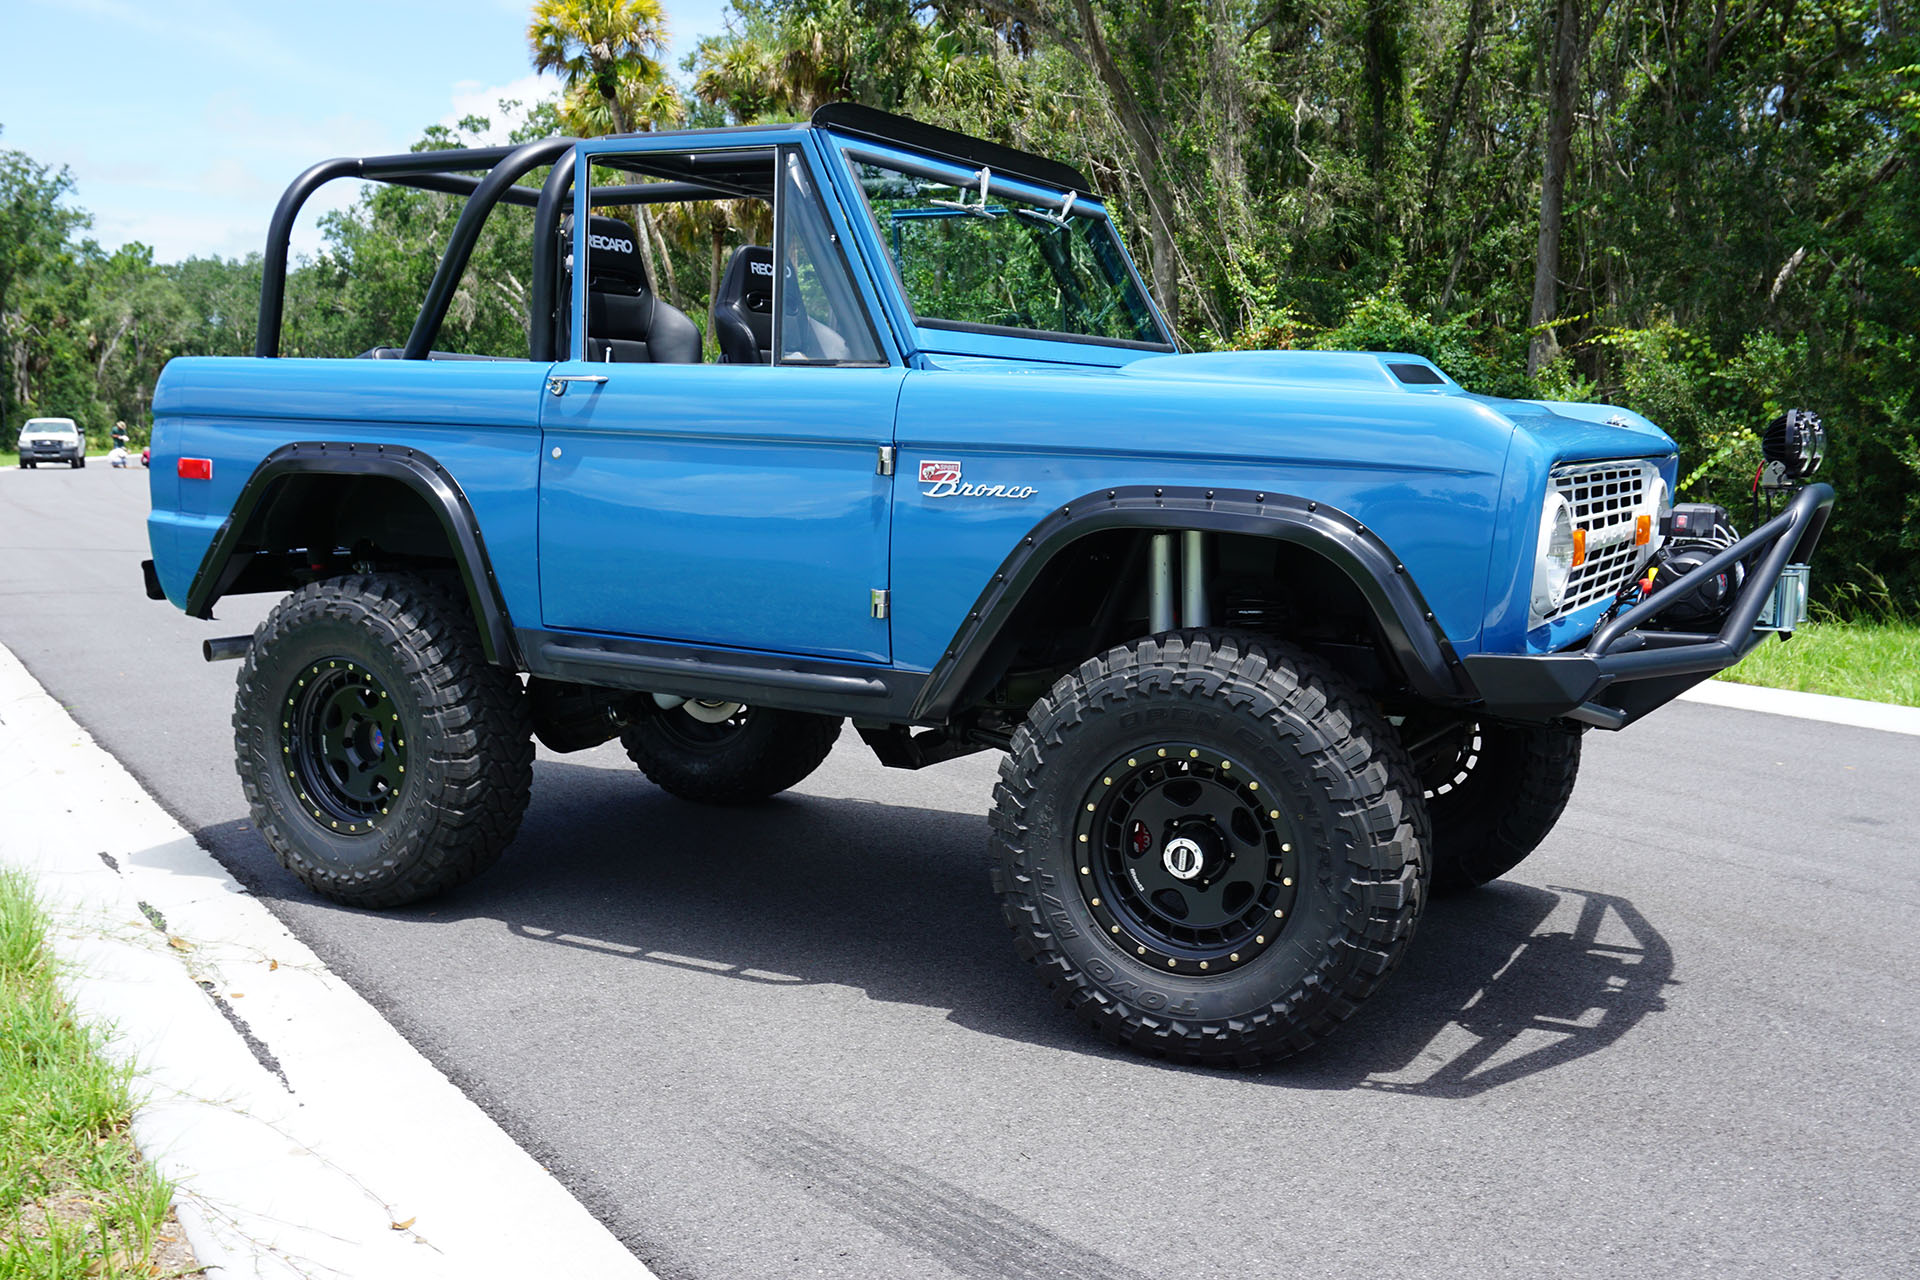 Ford Bronco Stunning Classic Broncos With 1980 Blue Beautiful Ads By Amazon